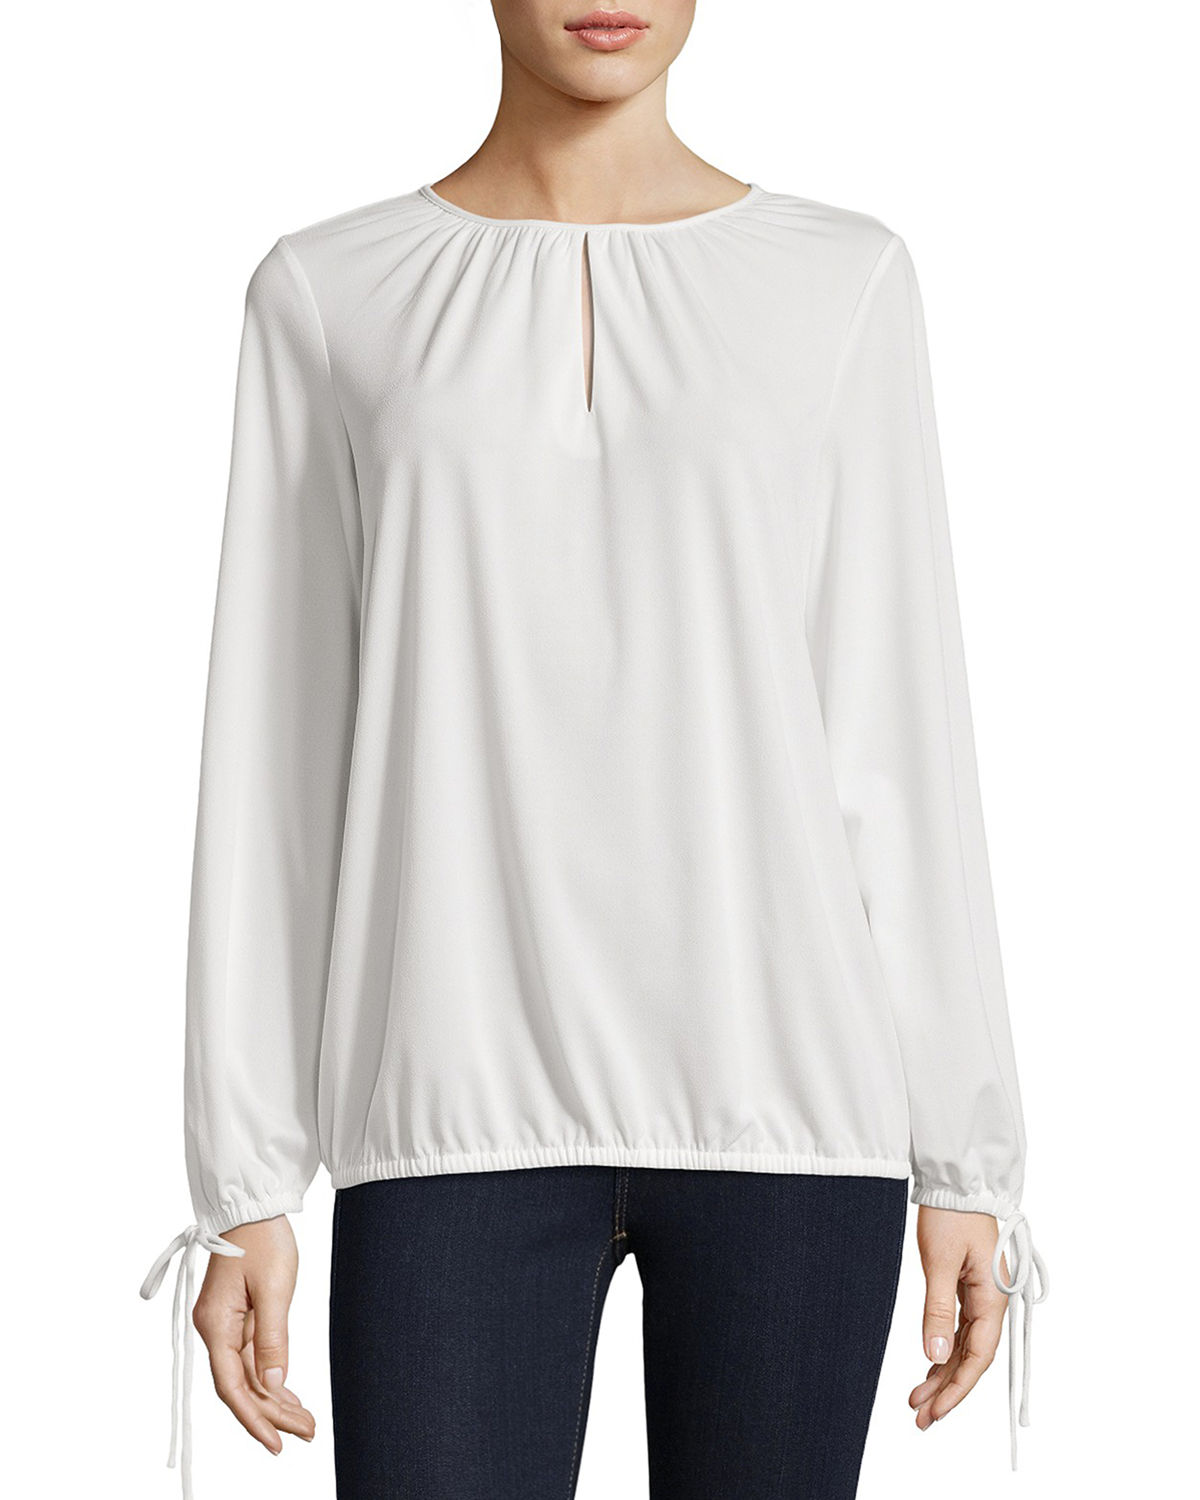 126d64a043673 5Twelve Long-Sleeve Ruched Keyhole Blouse In White